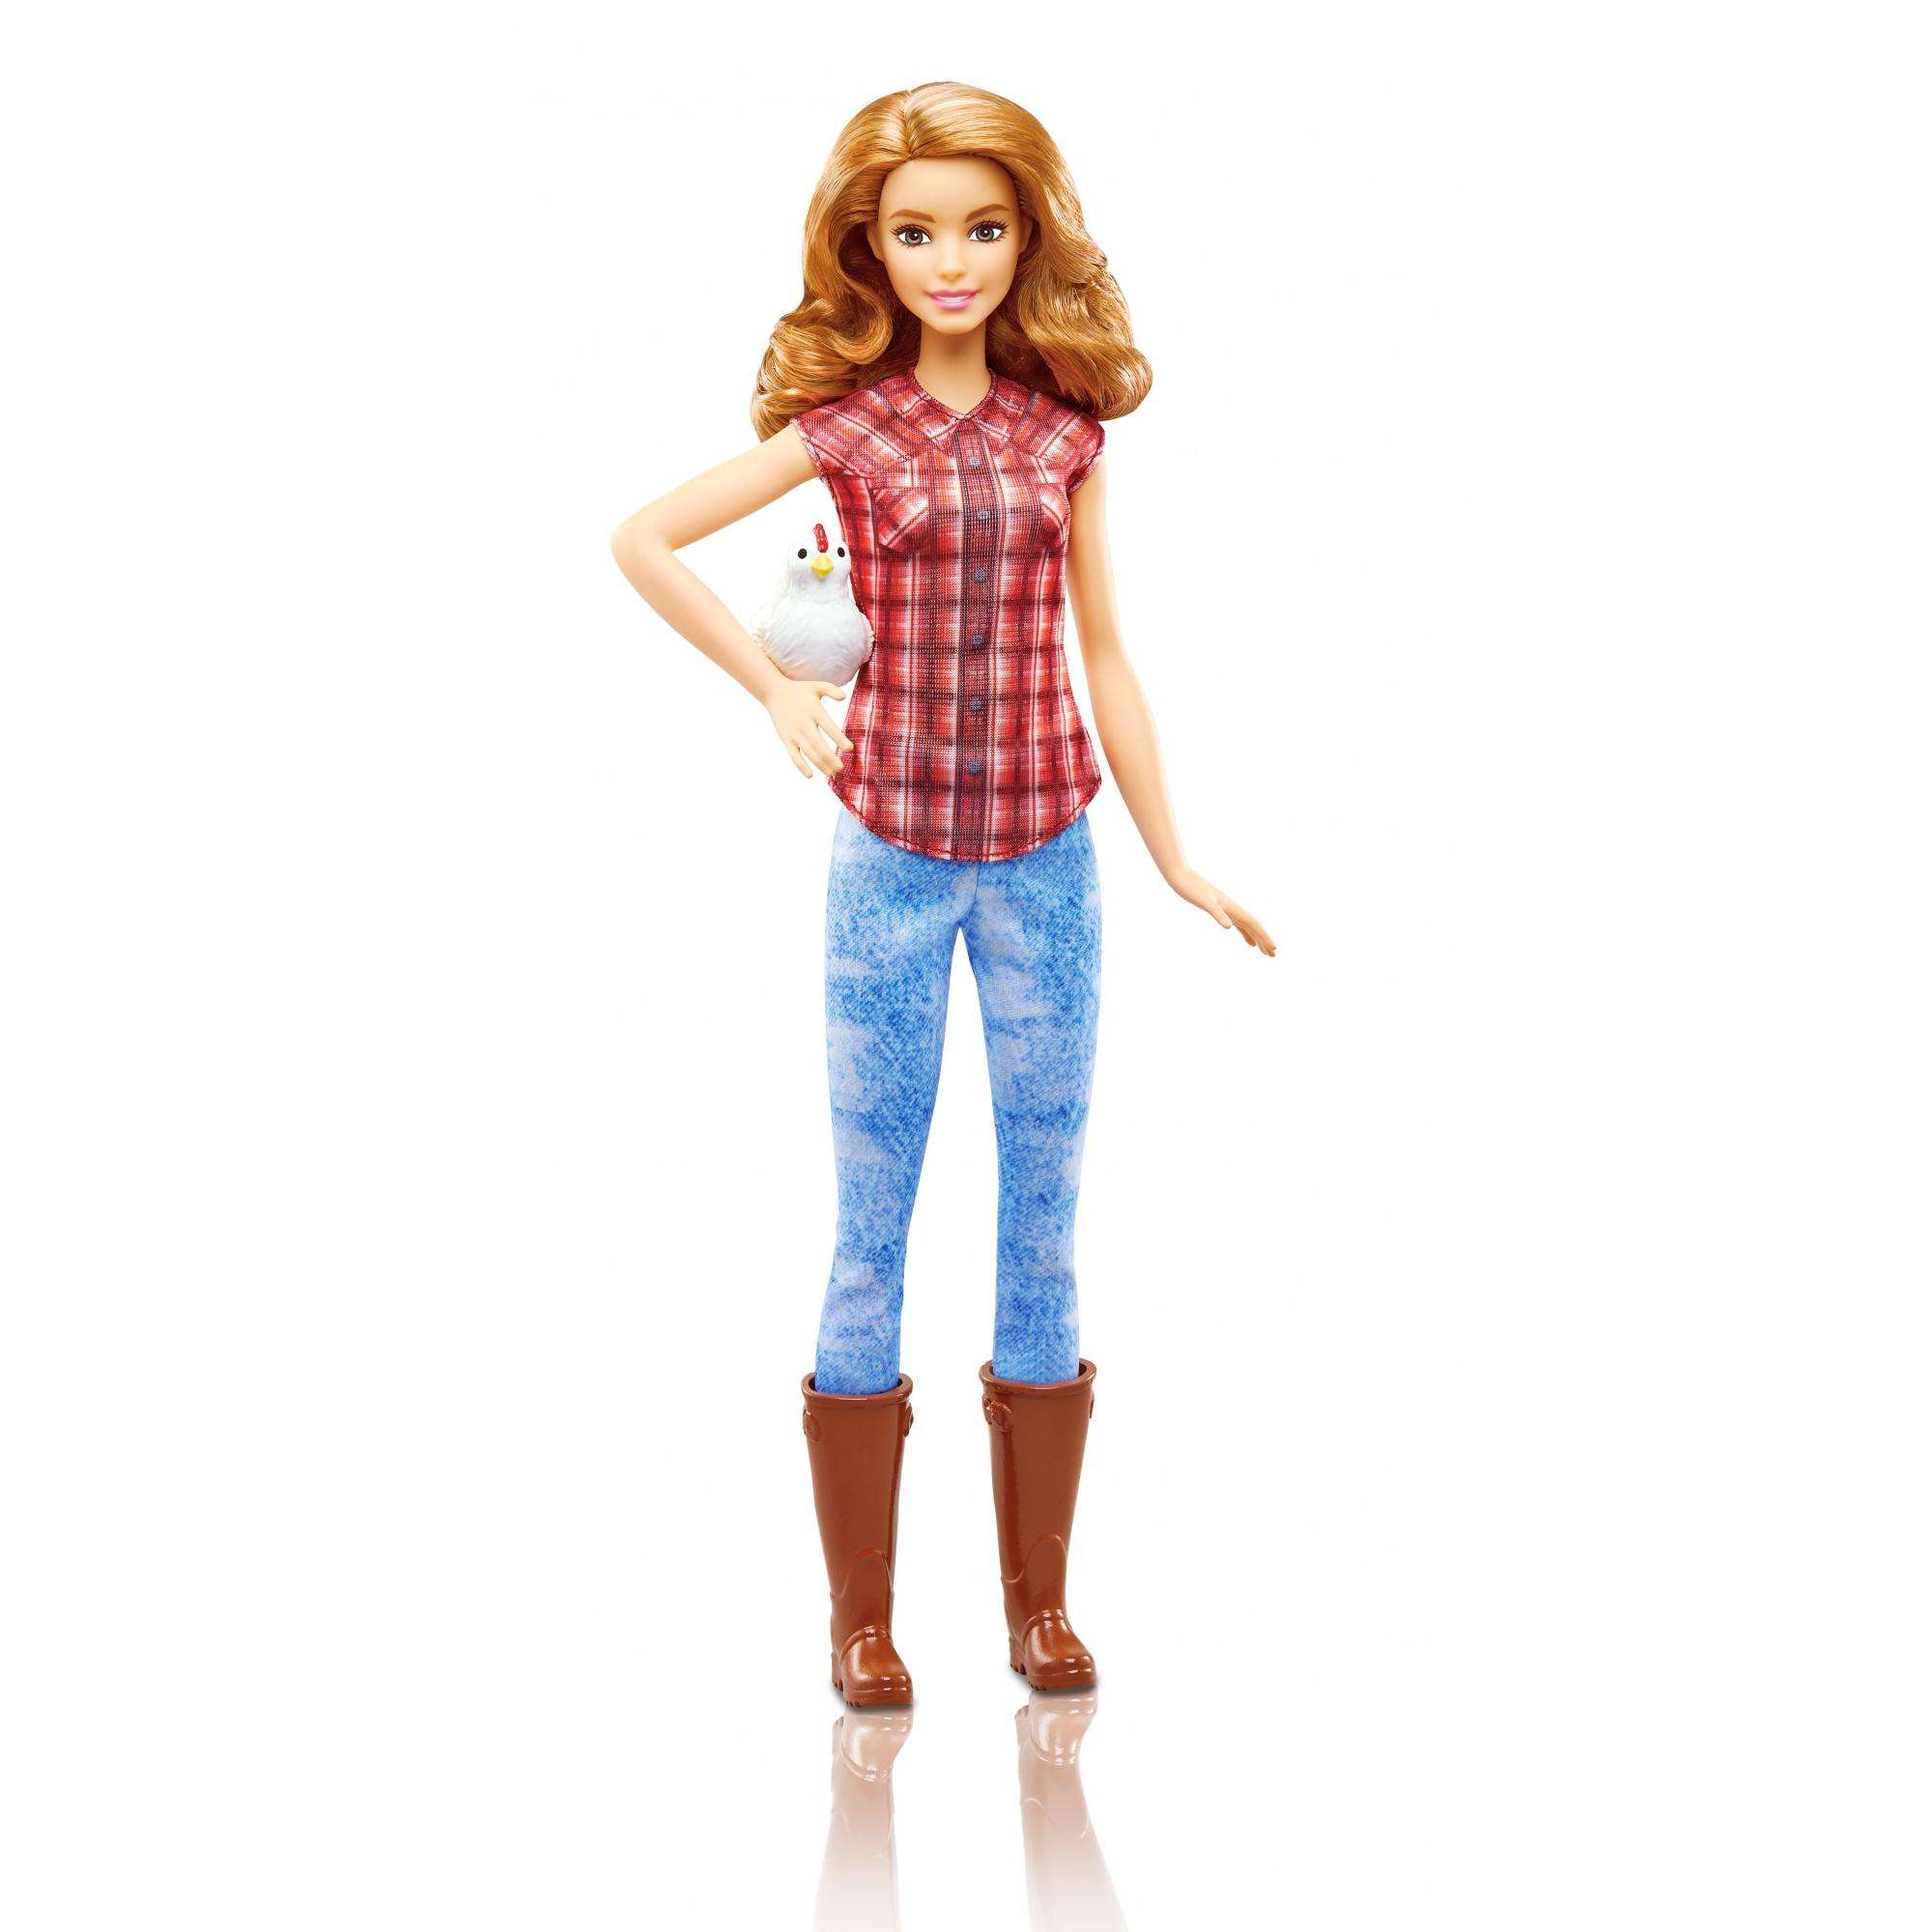 Barbie Farmer Doll by MATTEL INC.